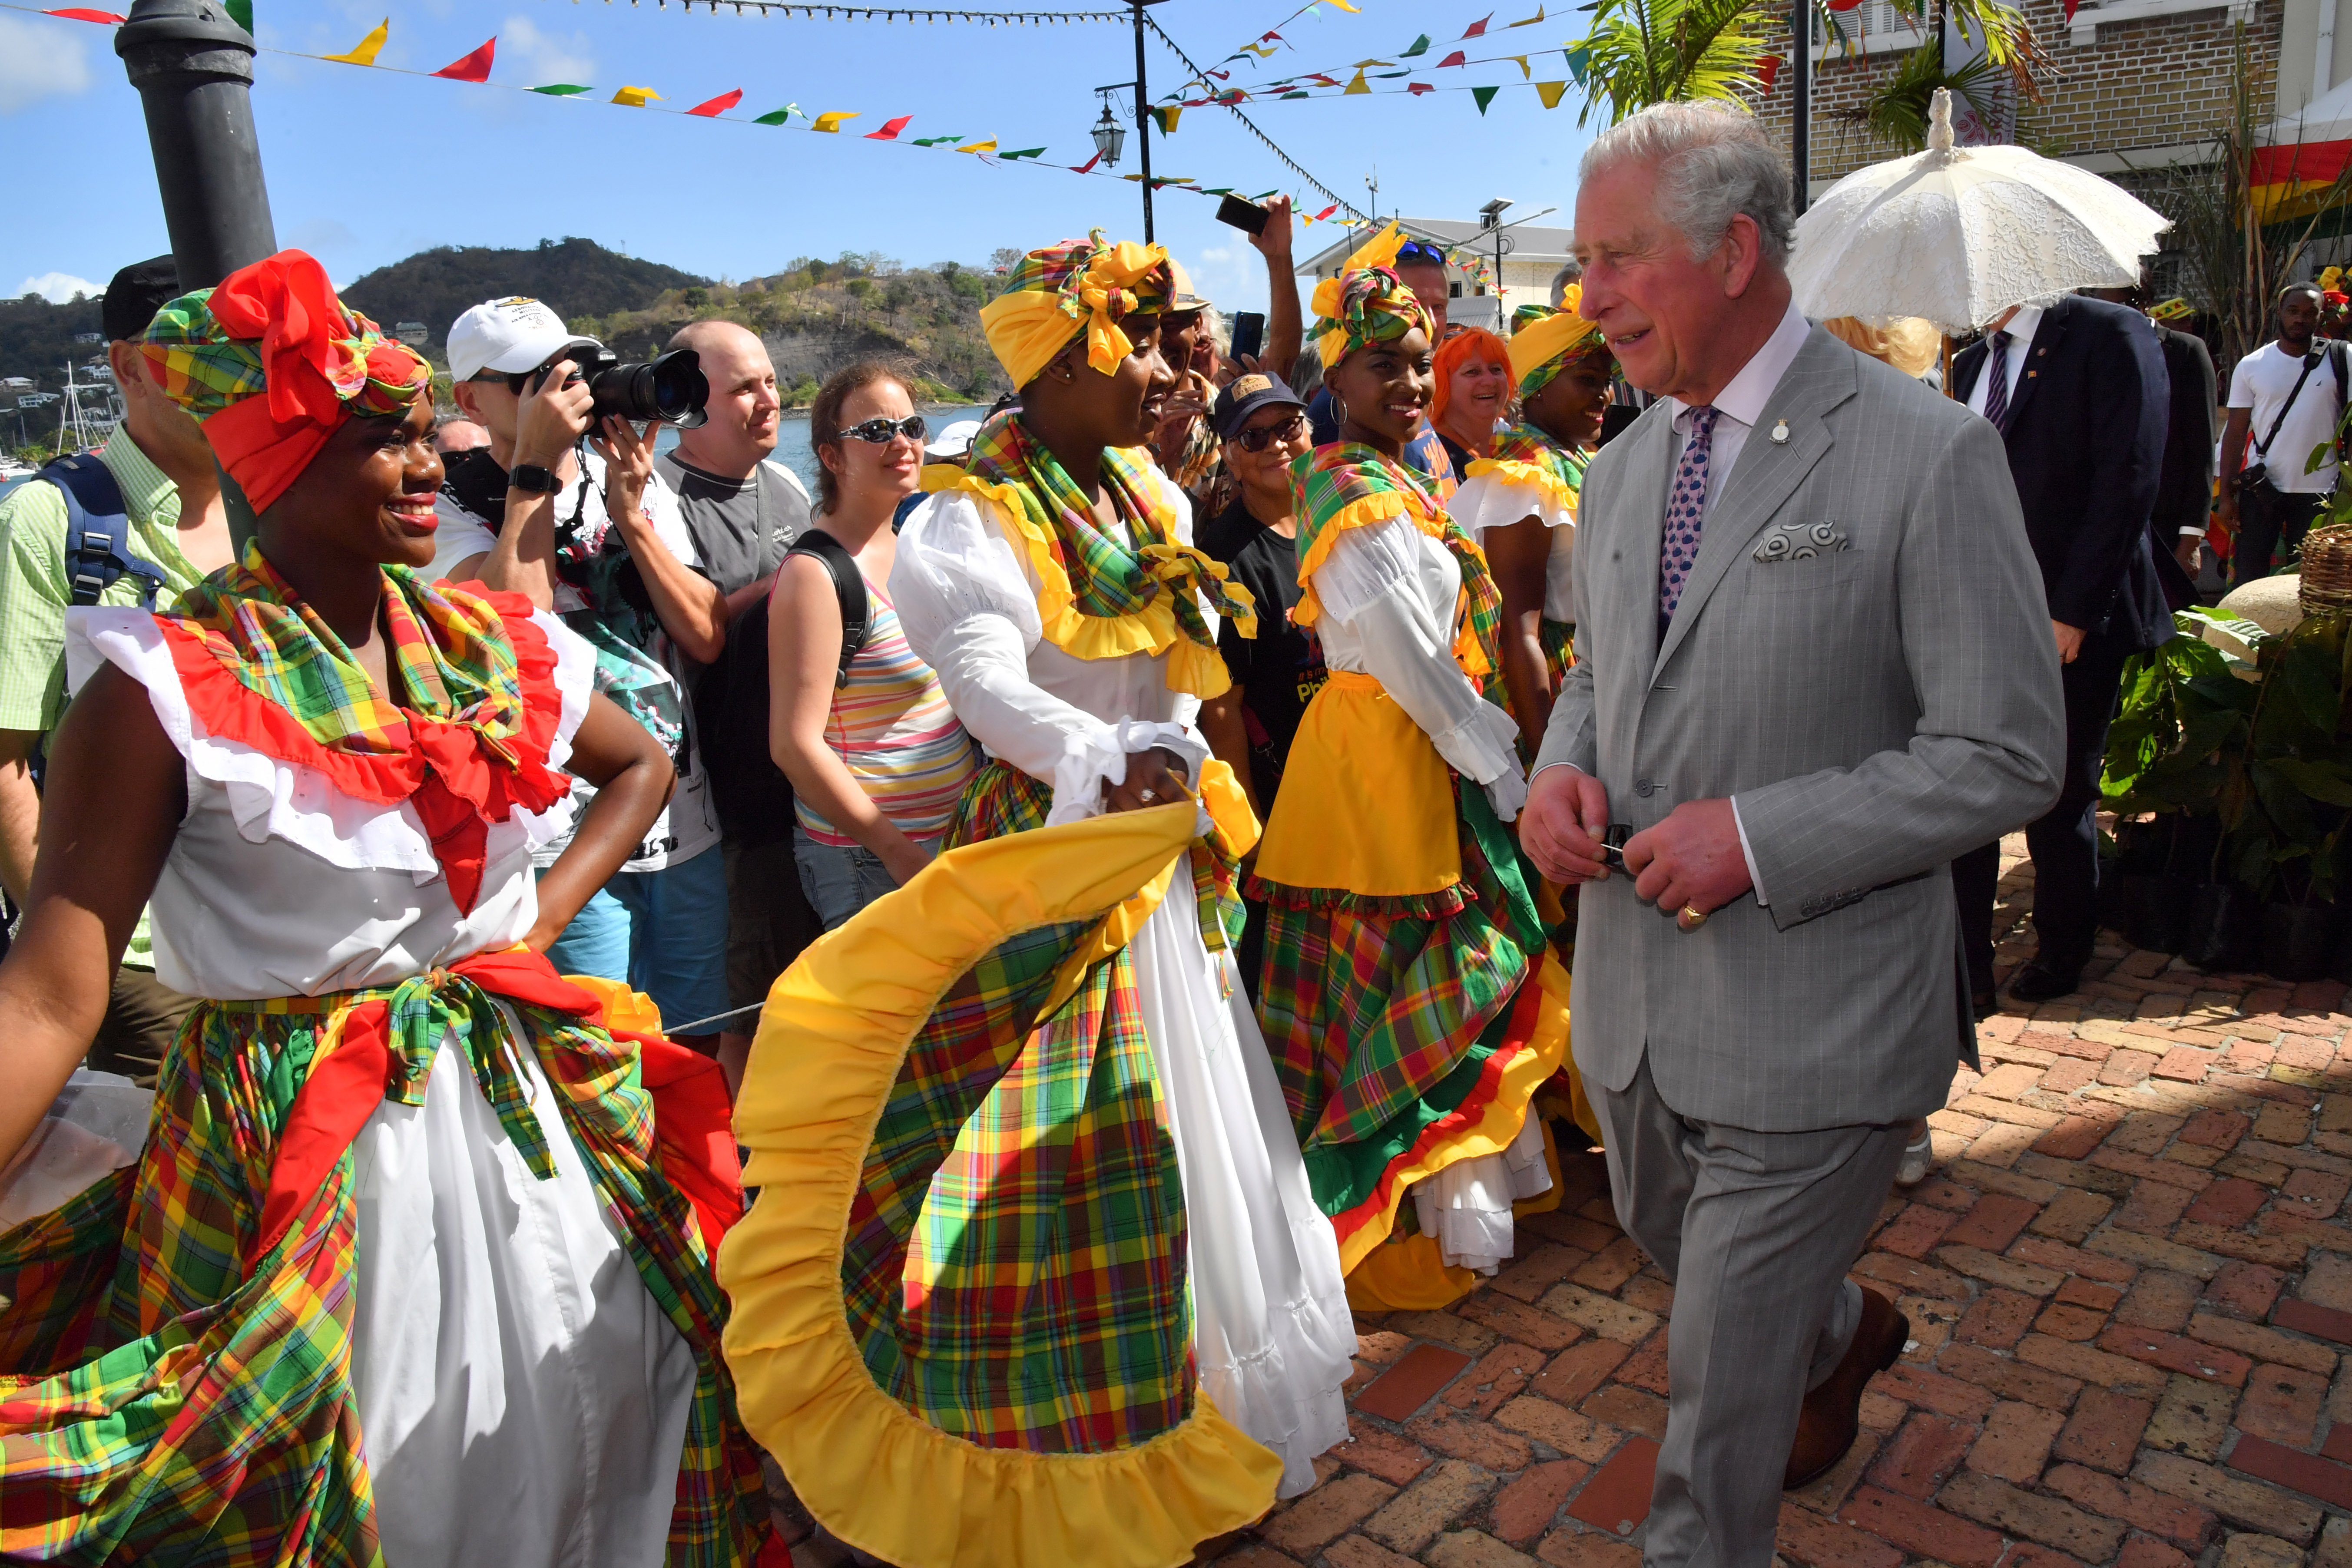 Prince Charles, Prince of Wales and Camilla, Duchess of Cornwall visit a market during their visit to Grenada on March 23, 2019 in Saint George's, Grenada. (Photo by Arthur Edwards - WPA Pool/Getty Images)